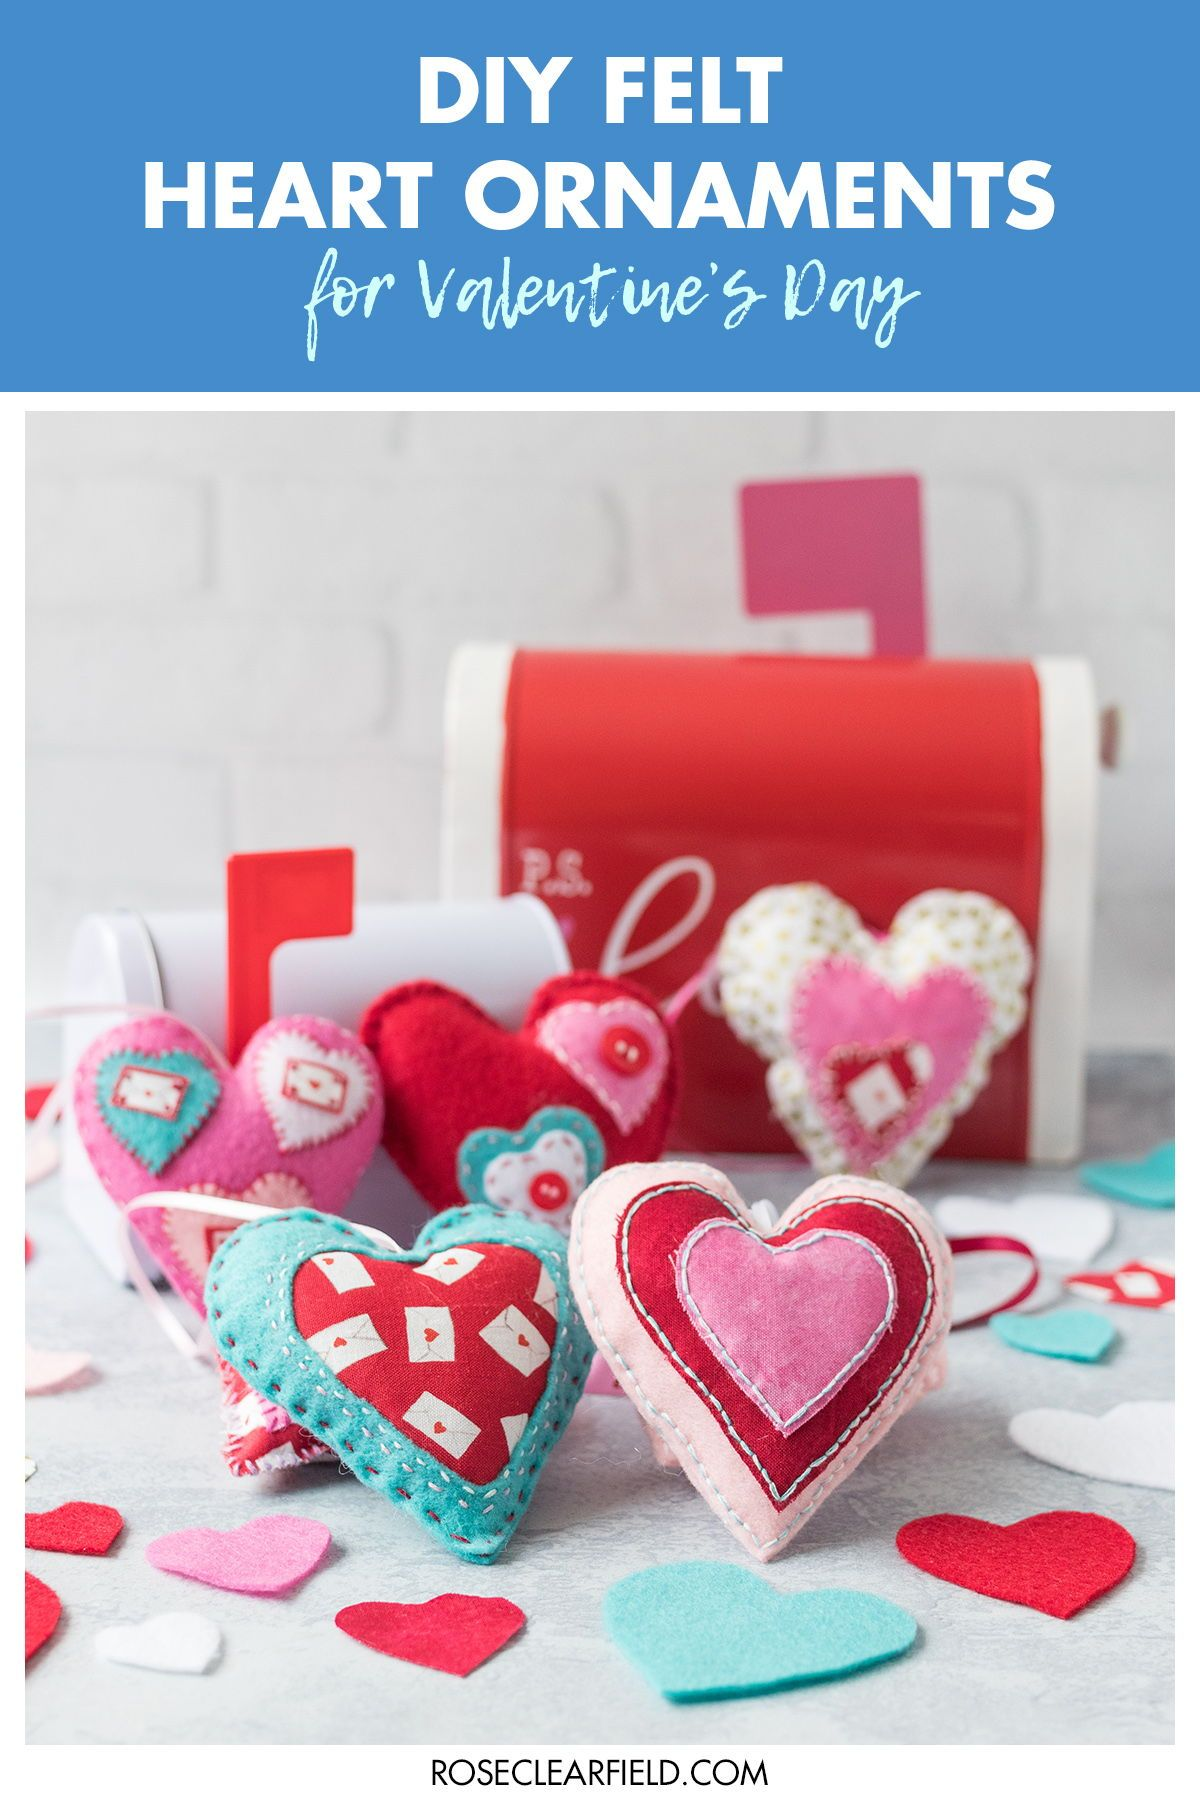 Diy Felt Heart Ornaments For Valentine S Day Valentines Day Cards Diy Valentine Day Crafts Diy Valentines Crafts